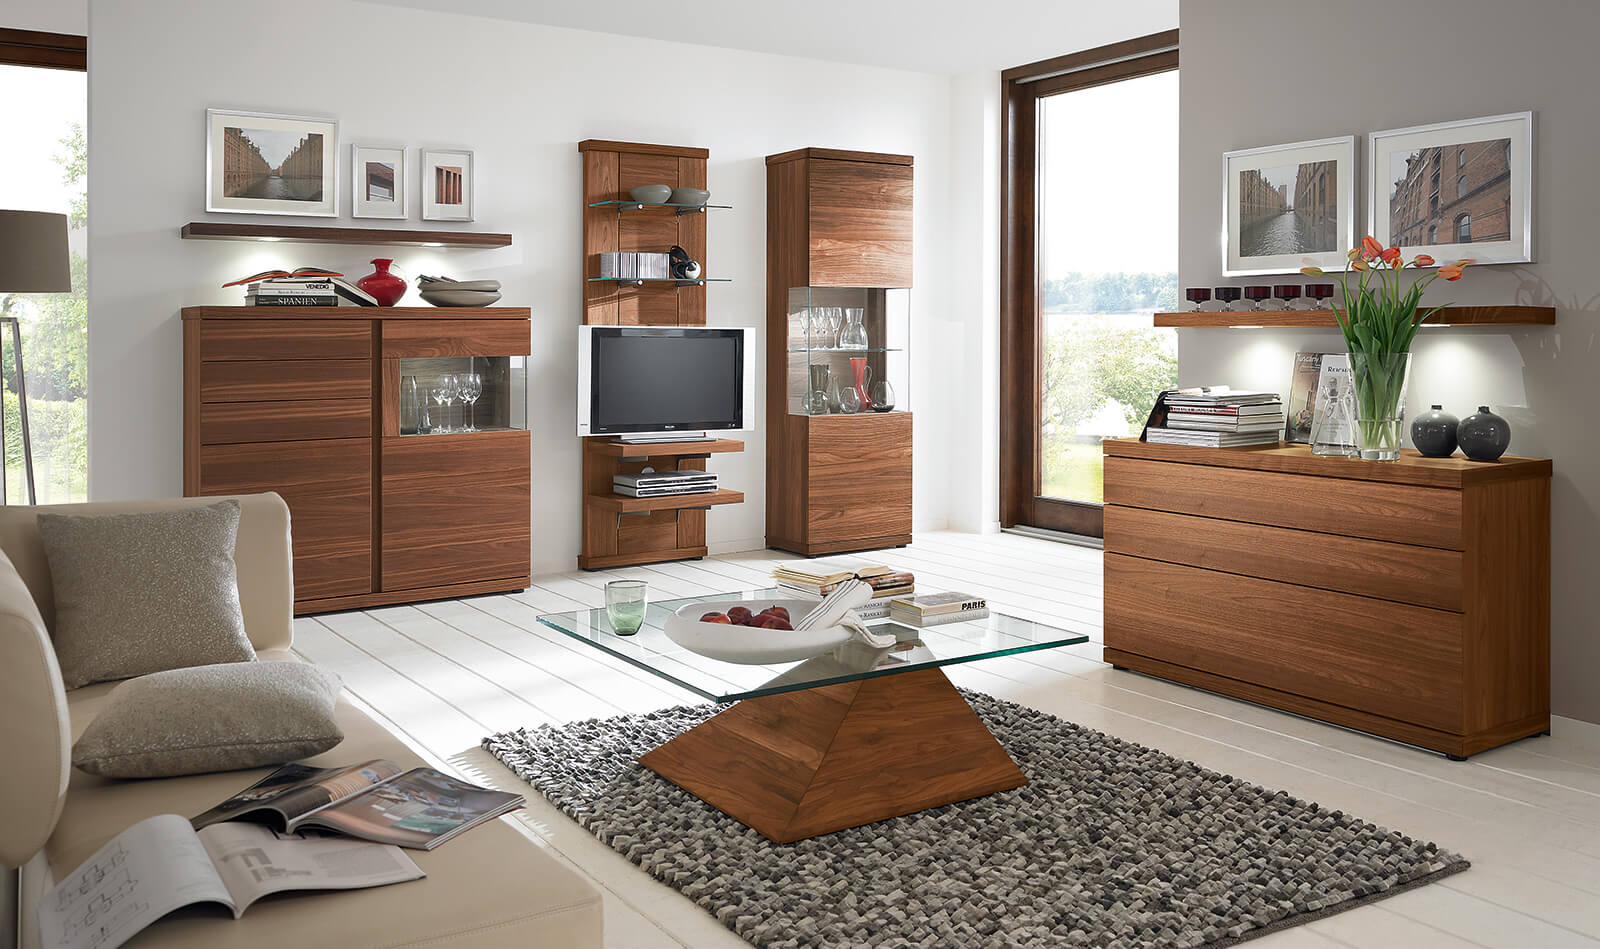 wohnzimmer programme v plus 6 0 venjakob m bel vorsprung durch design und qualit t. Black Bedroom Furniture Sets. Home Design Ideas